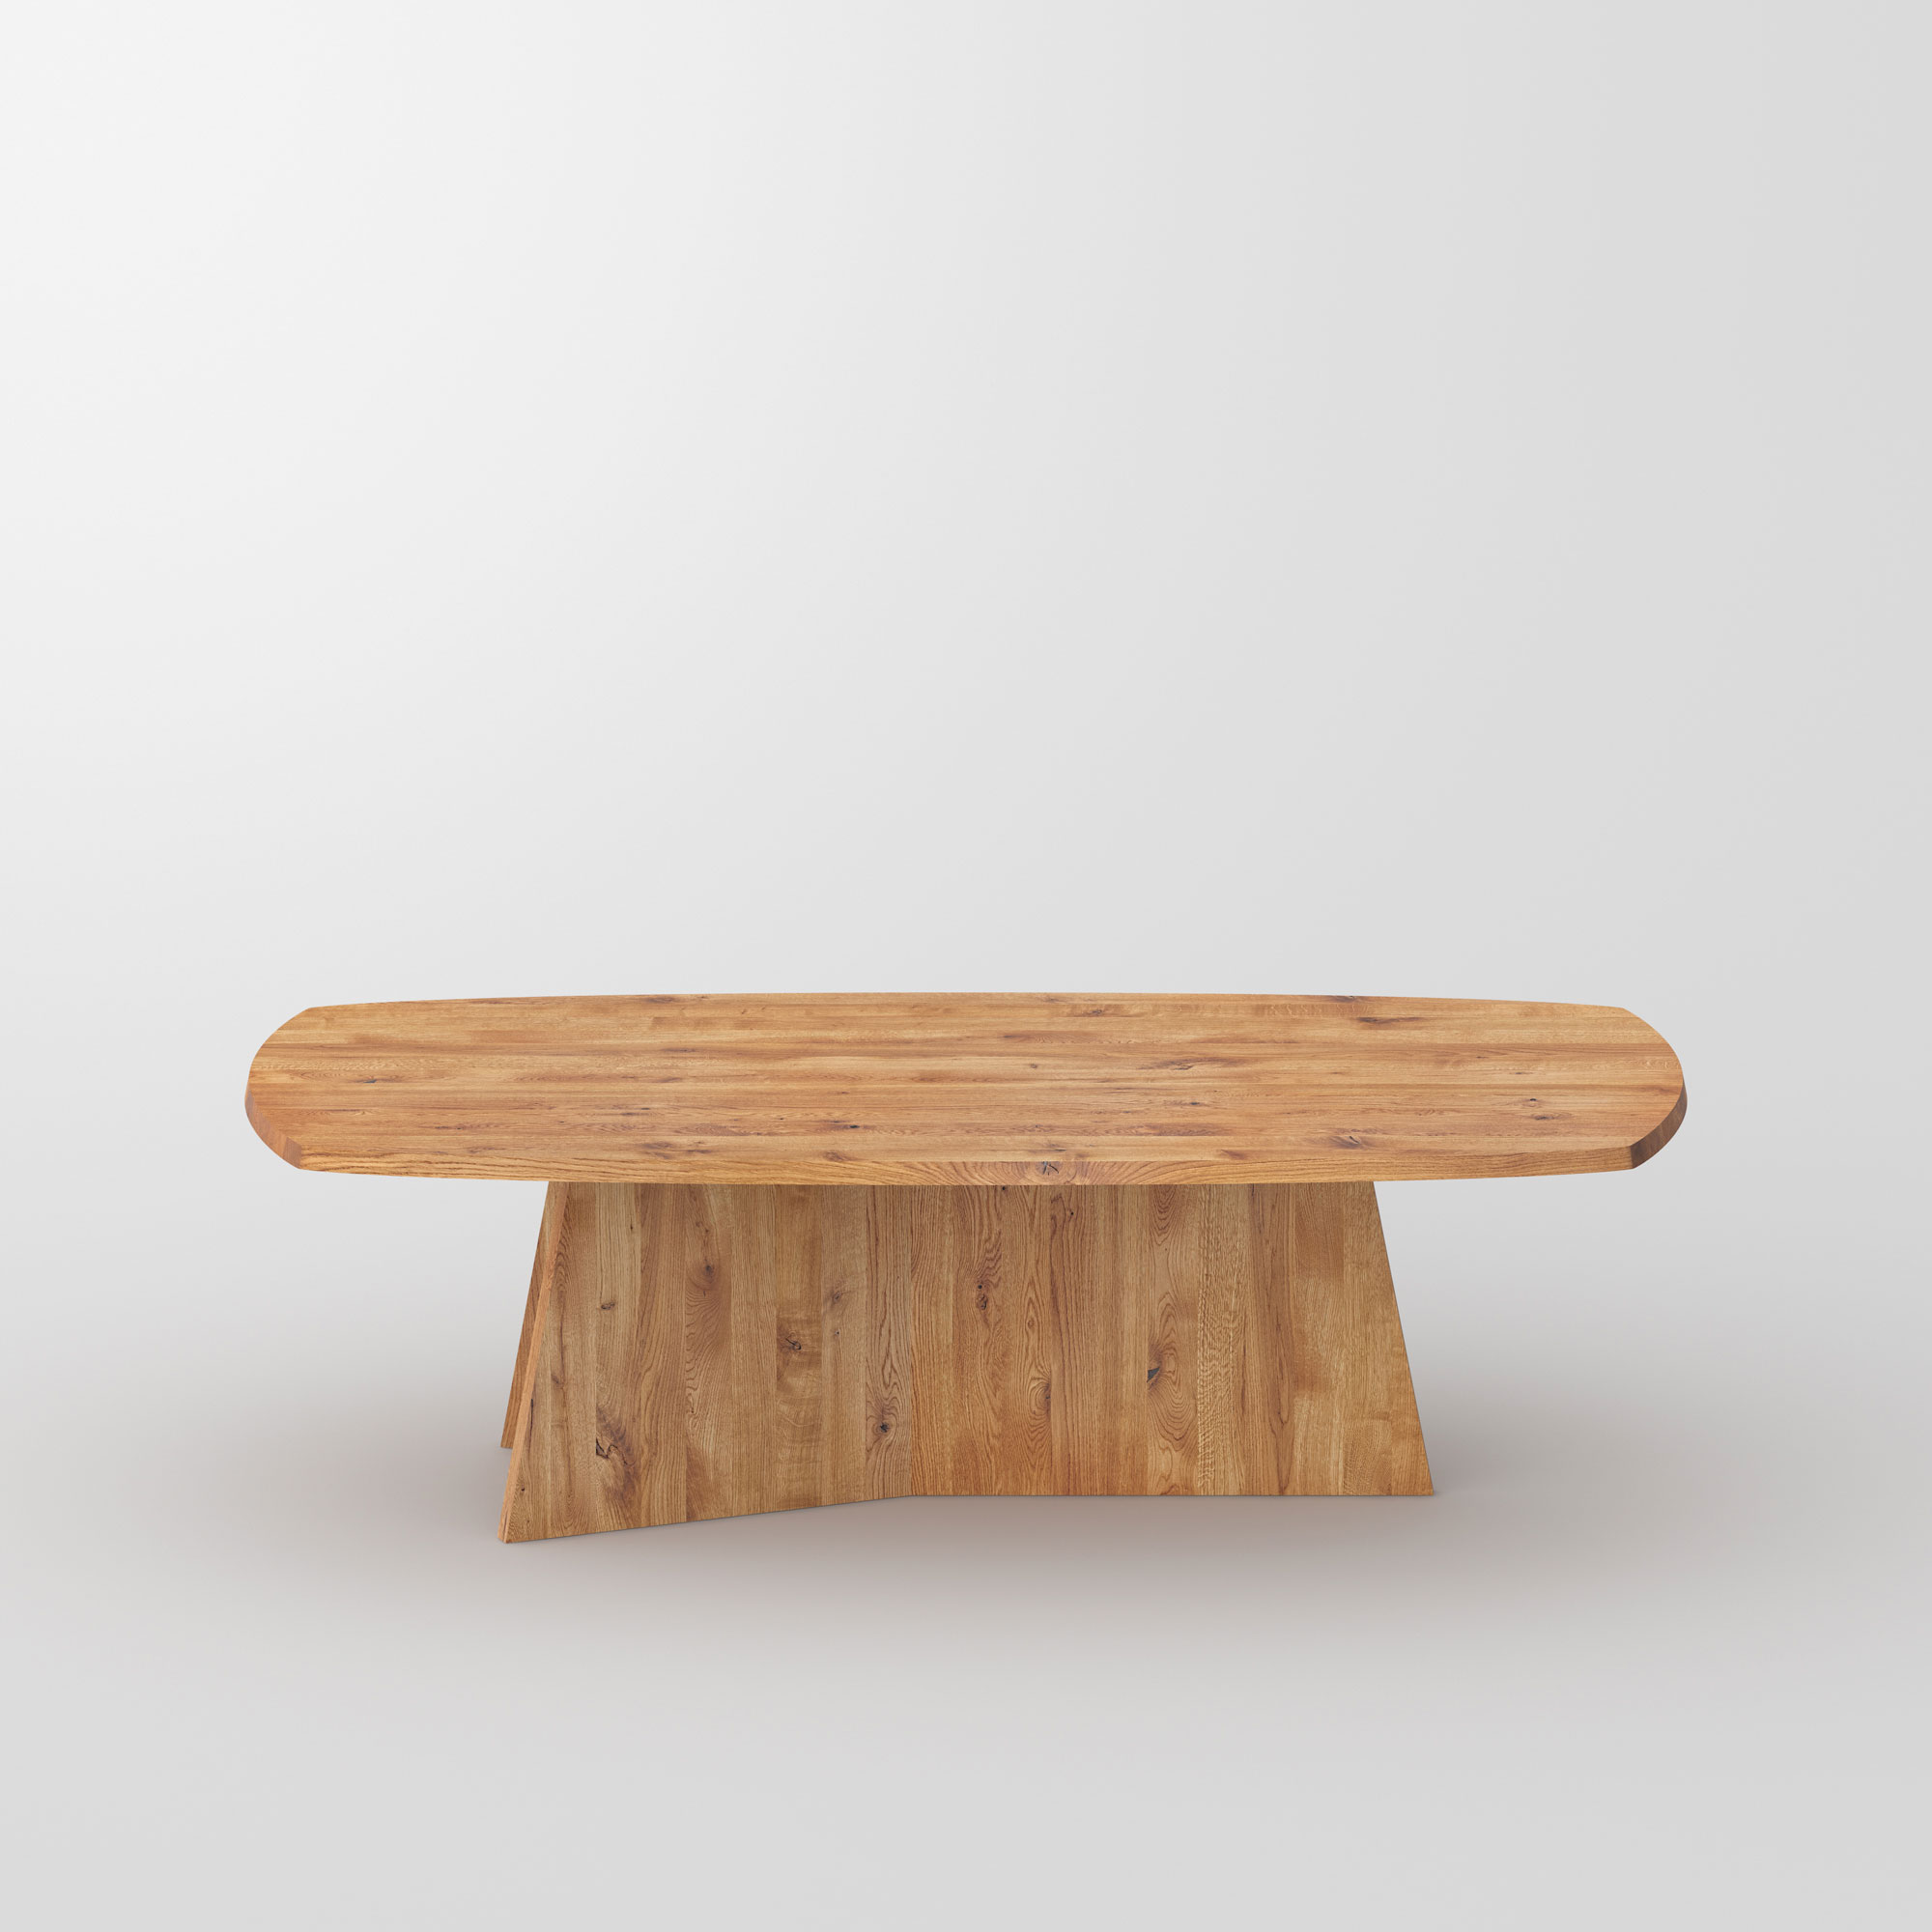 Design Dining Table LOTUS cam3 custom made in solid wood by vitamin design